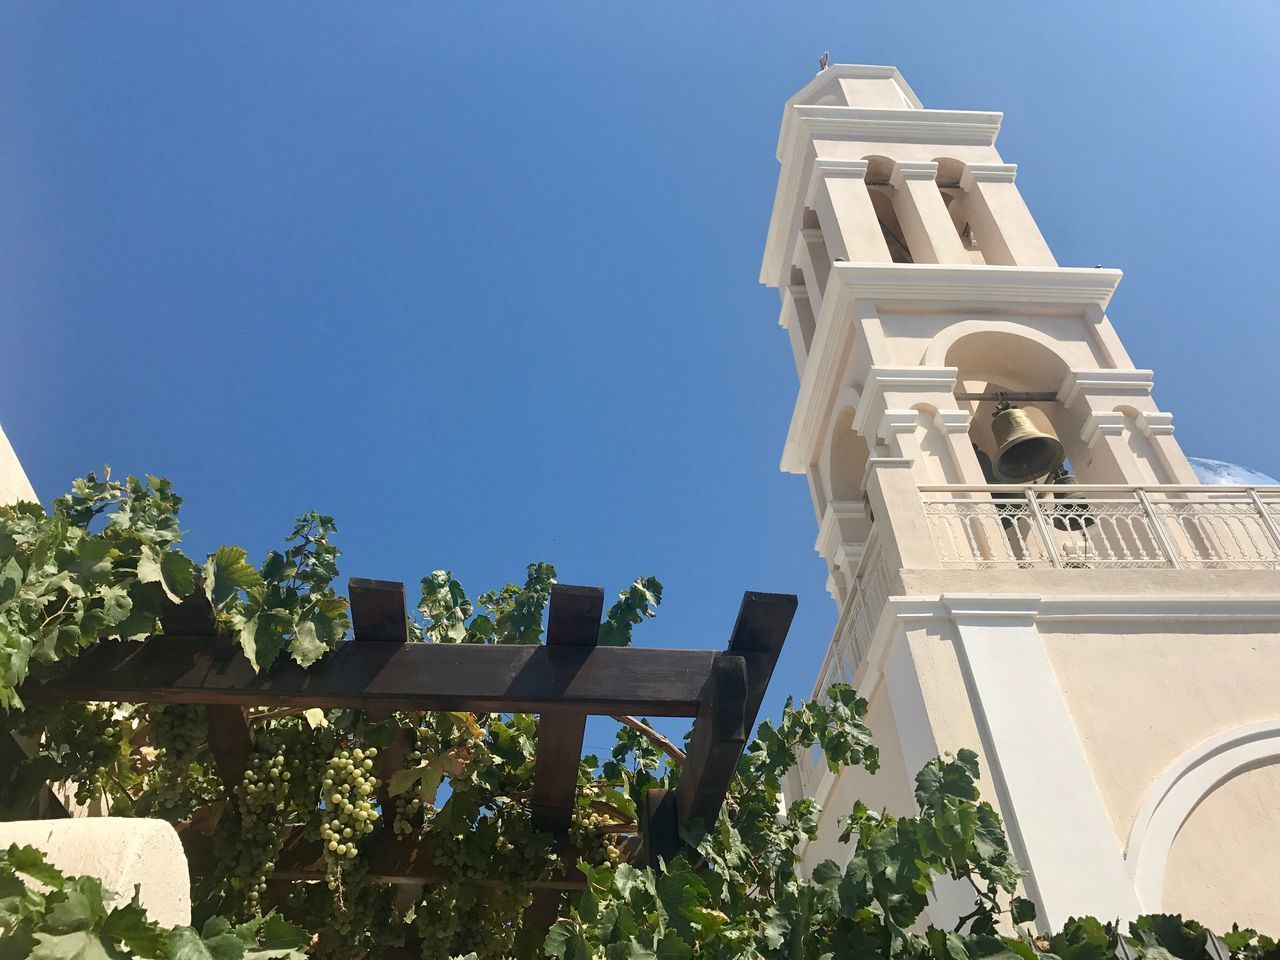 architecture, low angle view, built structure, building exterior, religion, day, outdoors, spirituality, place of worship, no people, tree, clear sky, sky